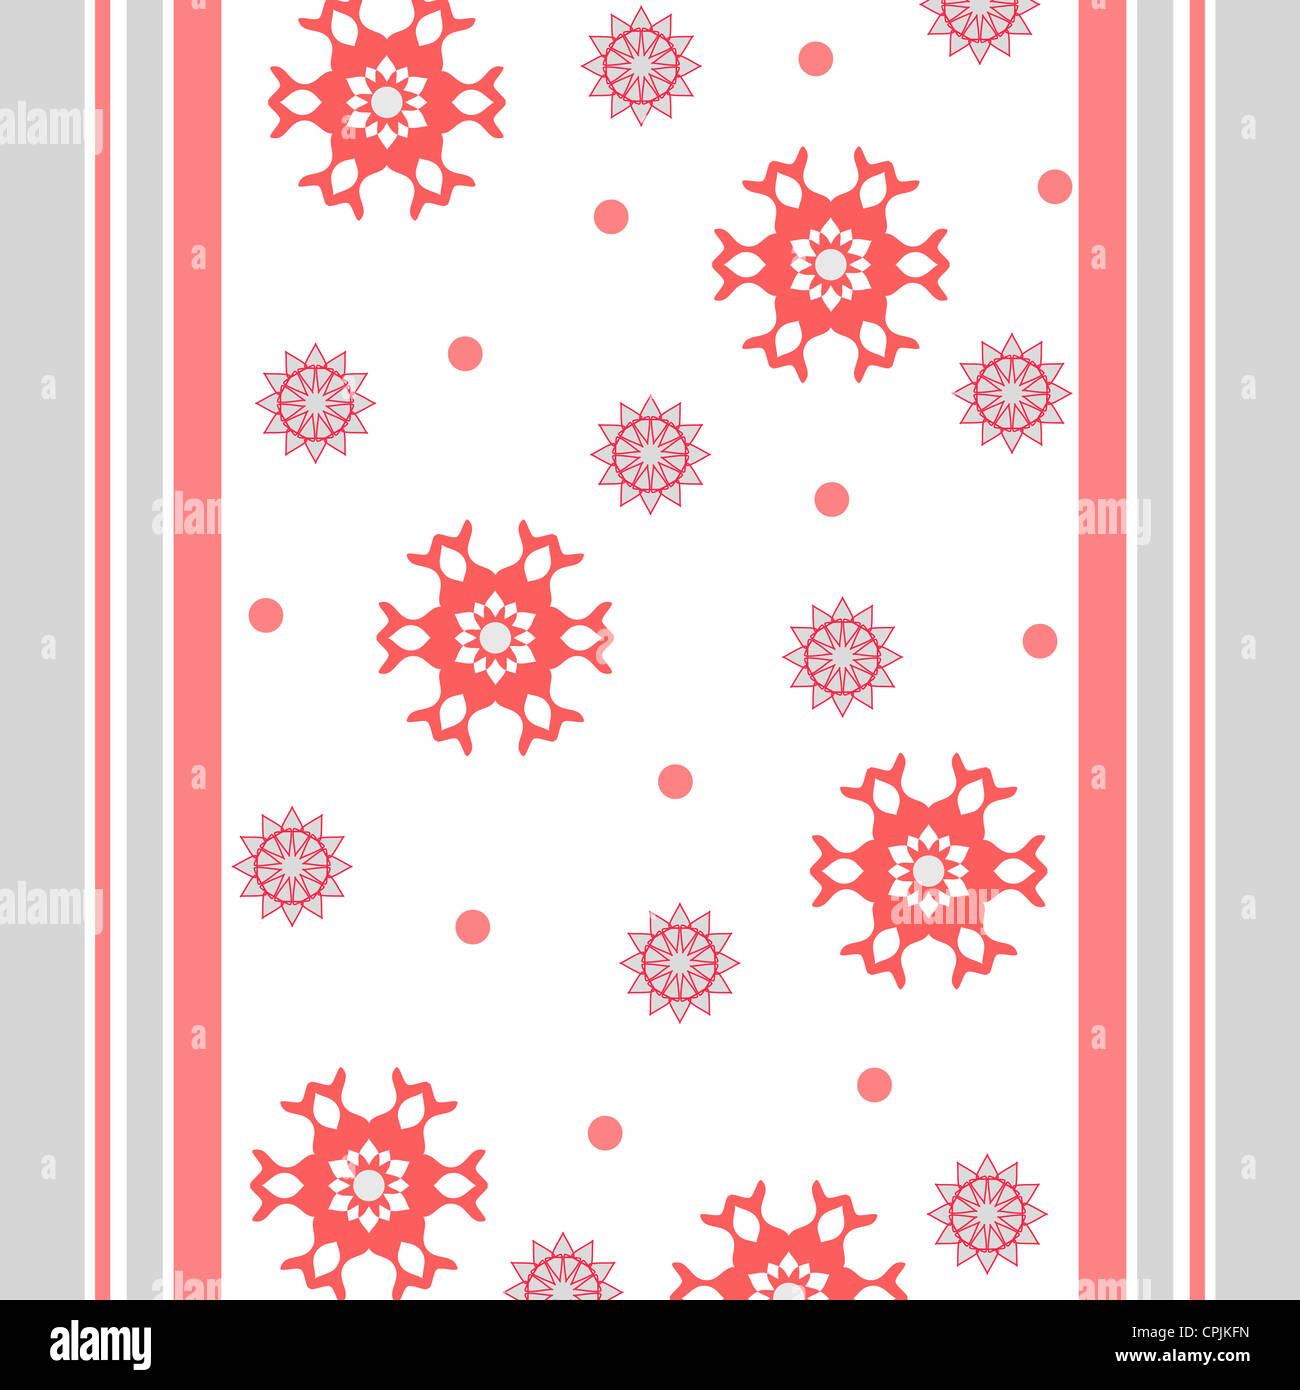 Artistic flowers and stripes pattern Stock Photo